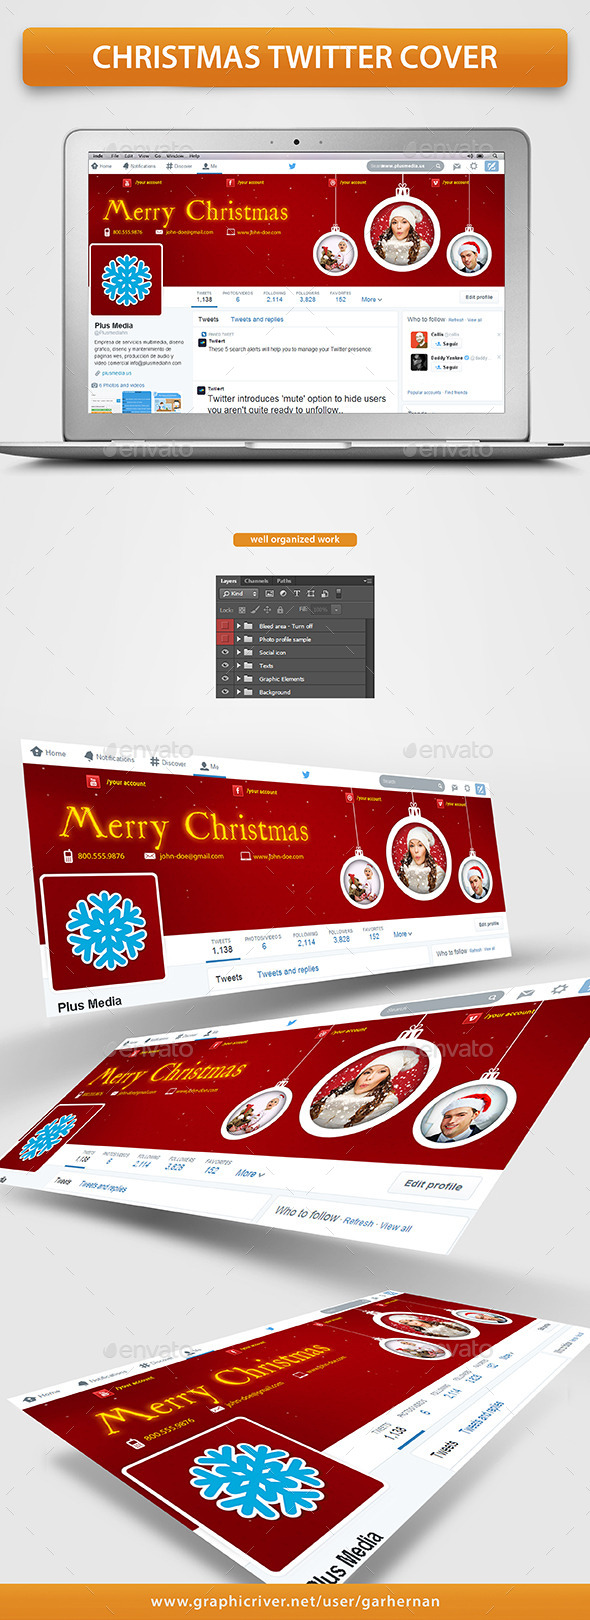 GraphicRiver Christmas Twitter Cover 9673922